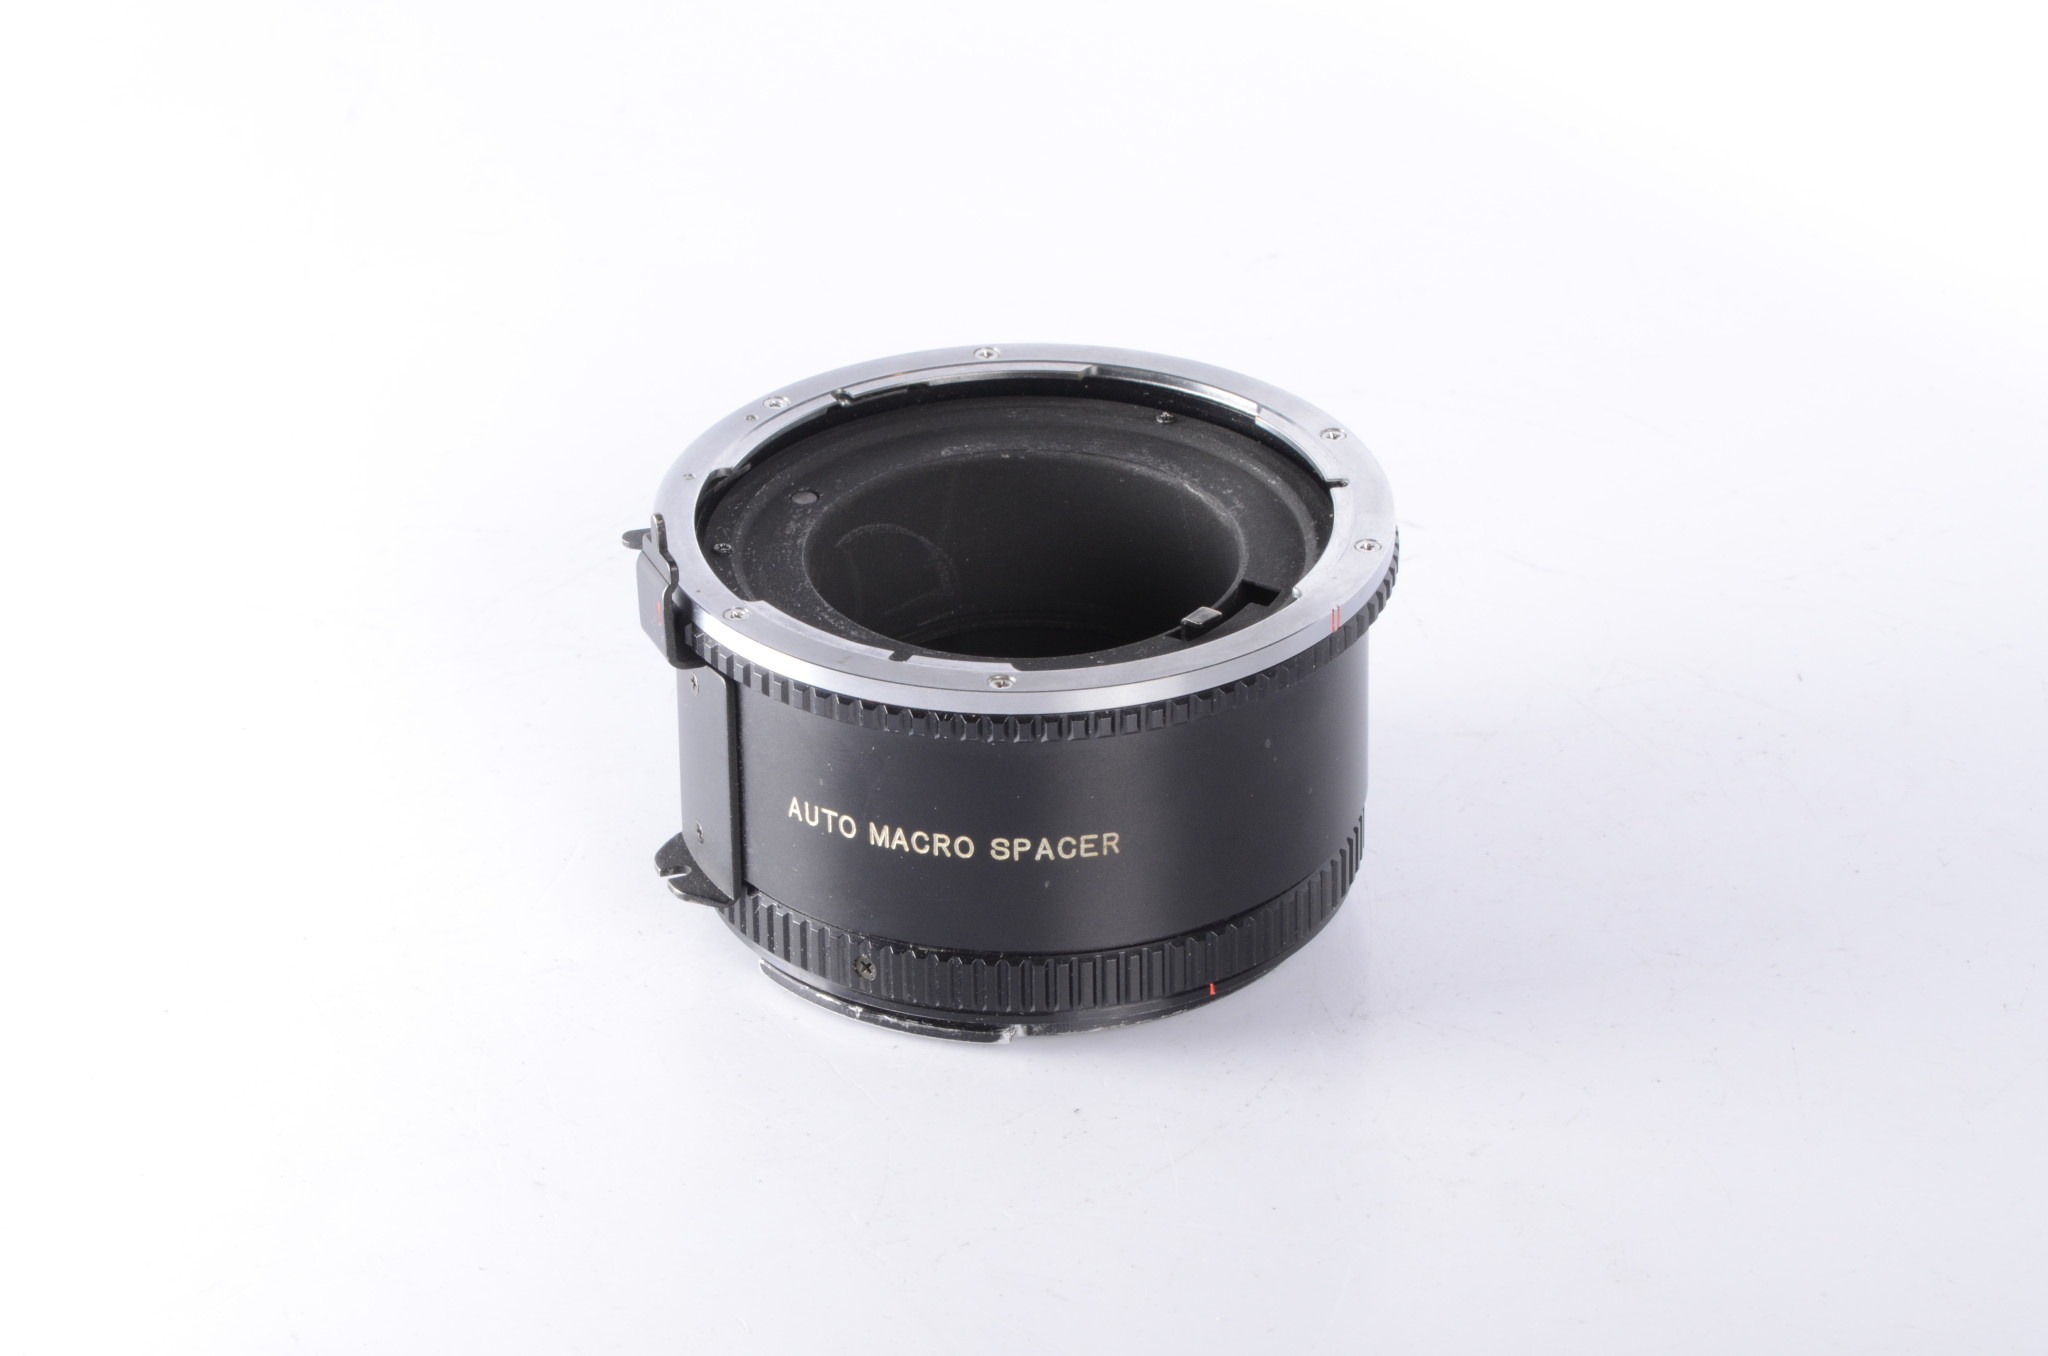 Mamiya Mamiya 645 Auto Macro Spacer for 80mm F4 *